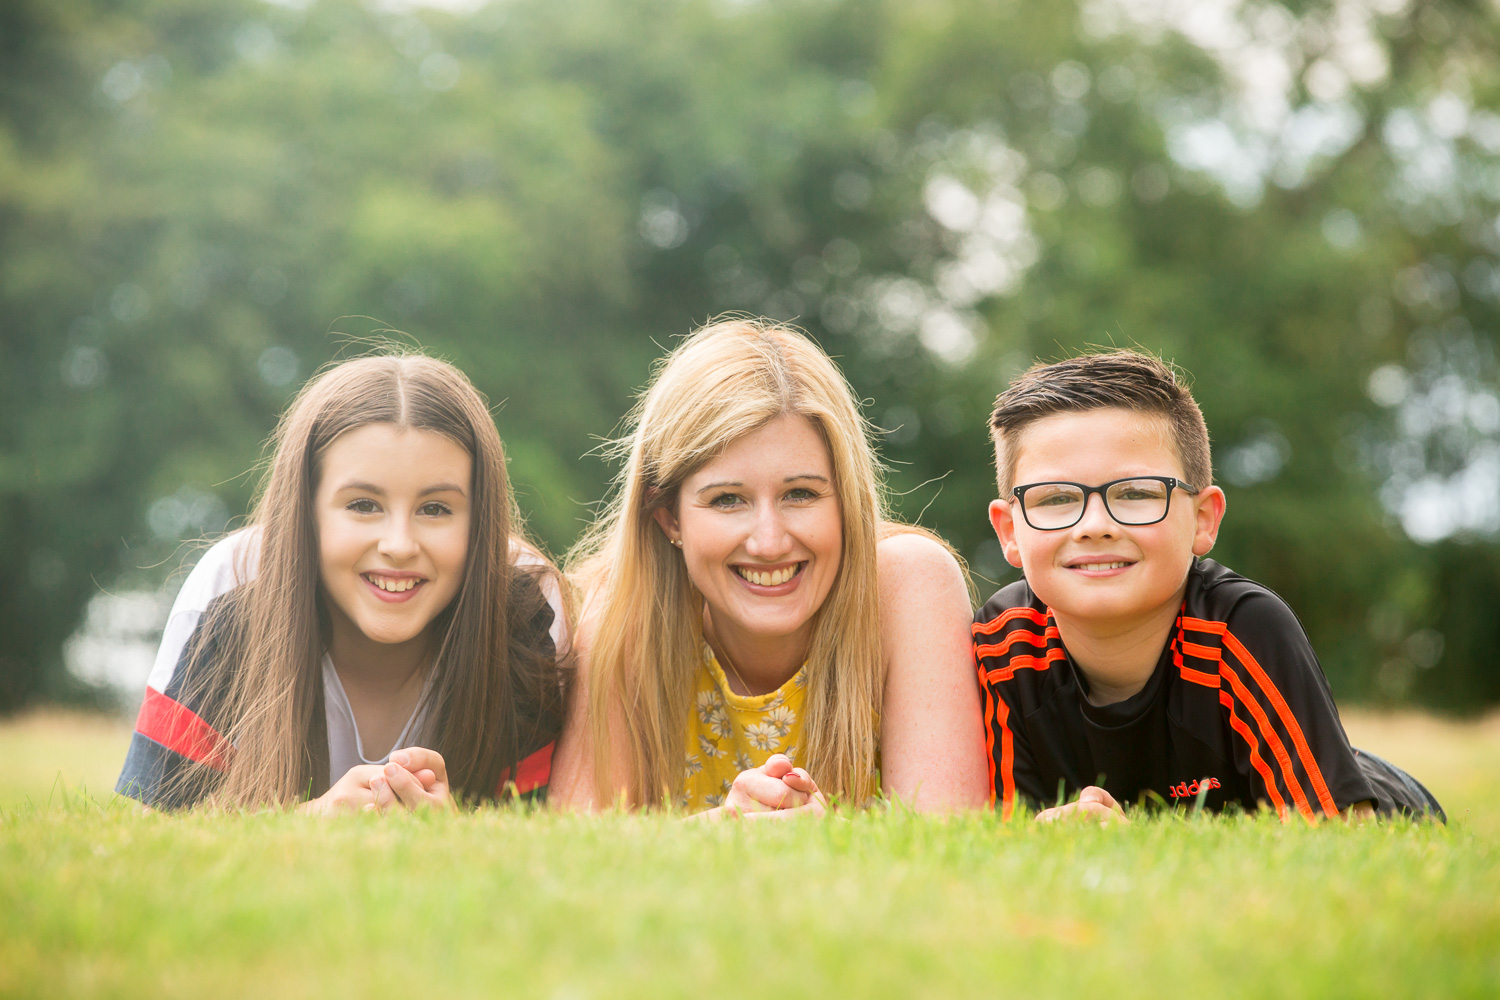 family photographer in chandlers ford captures mum and teenage children